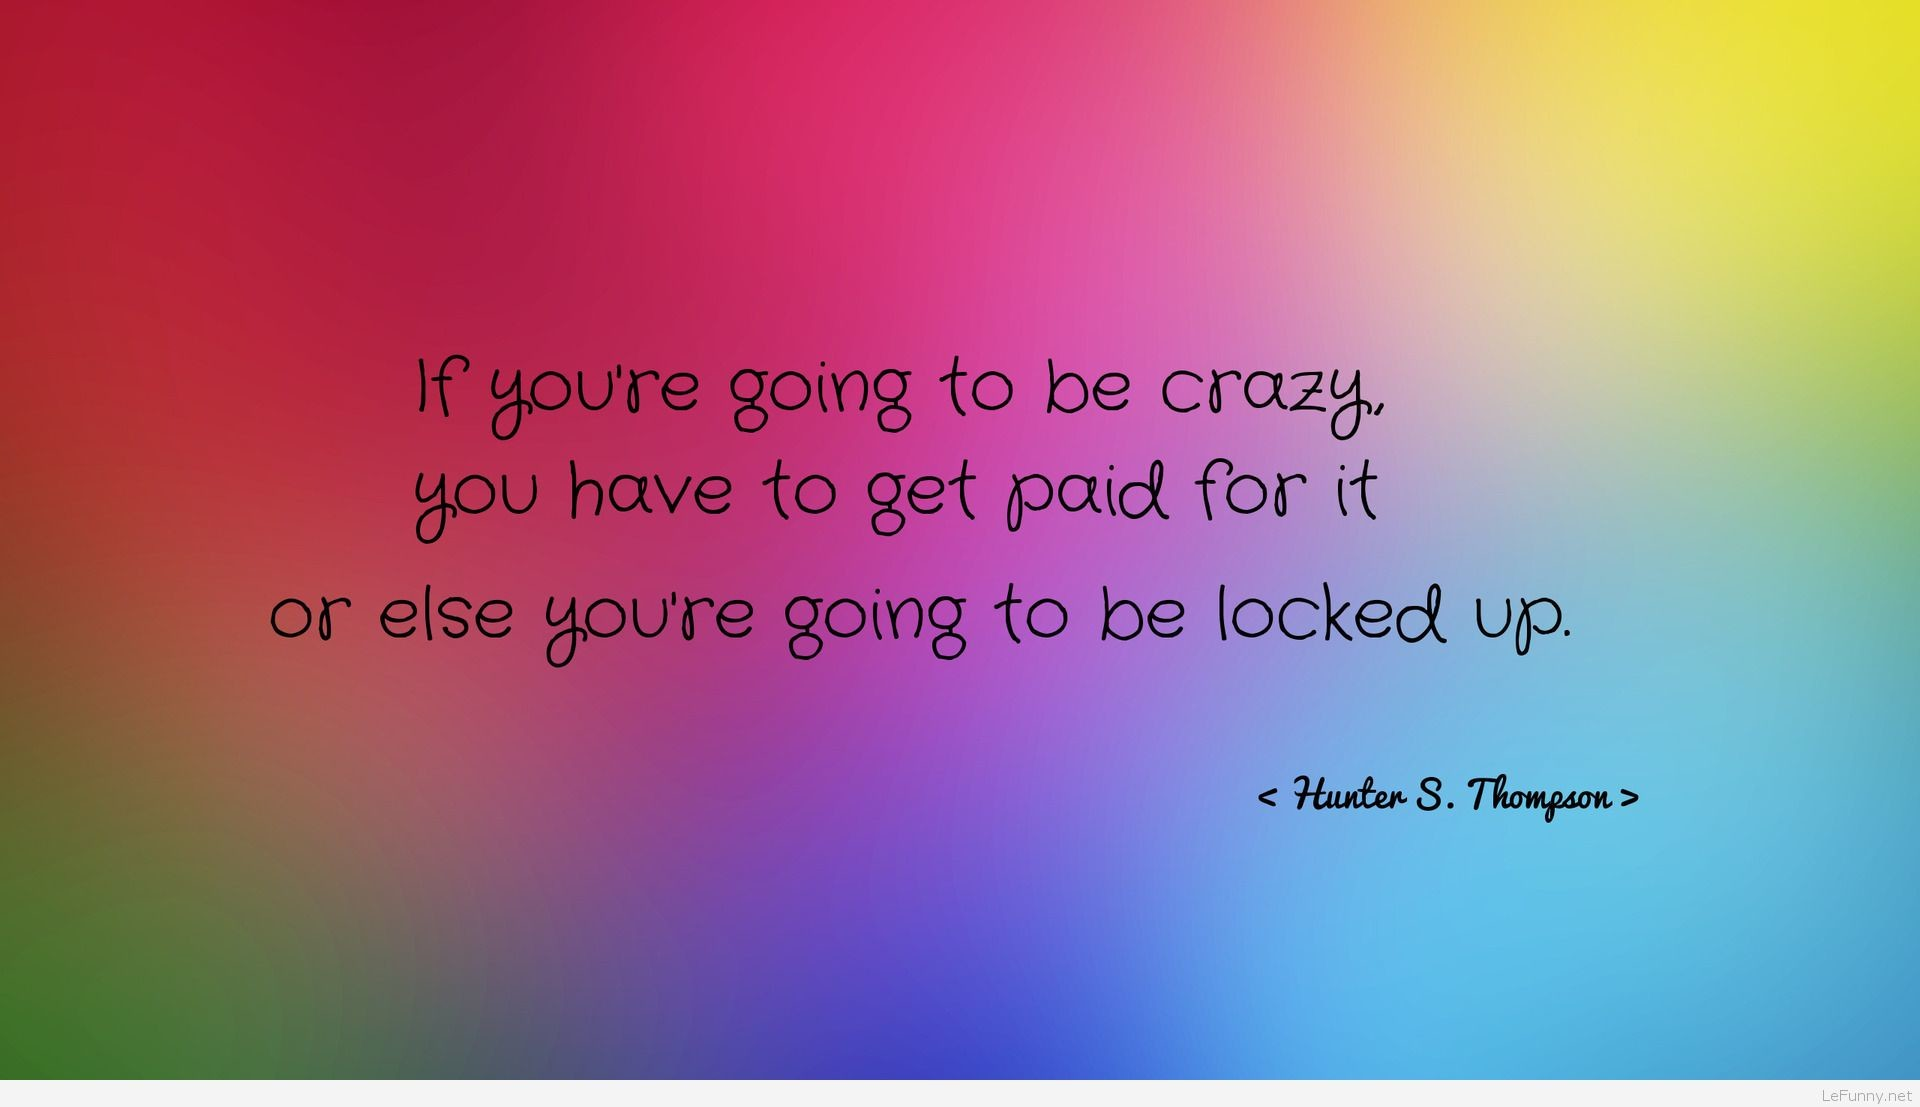 if-youre-going-to-be-crazy-1920×1080-funny-